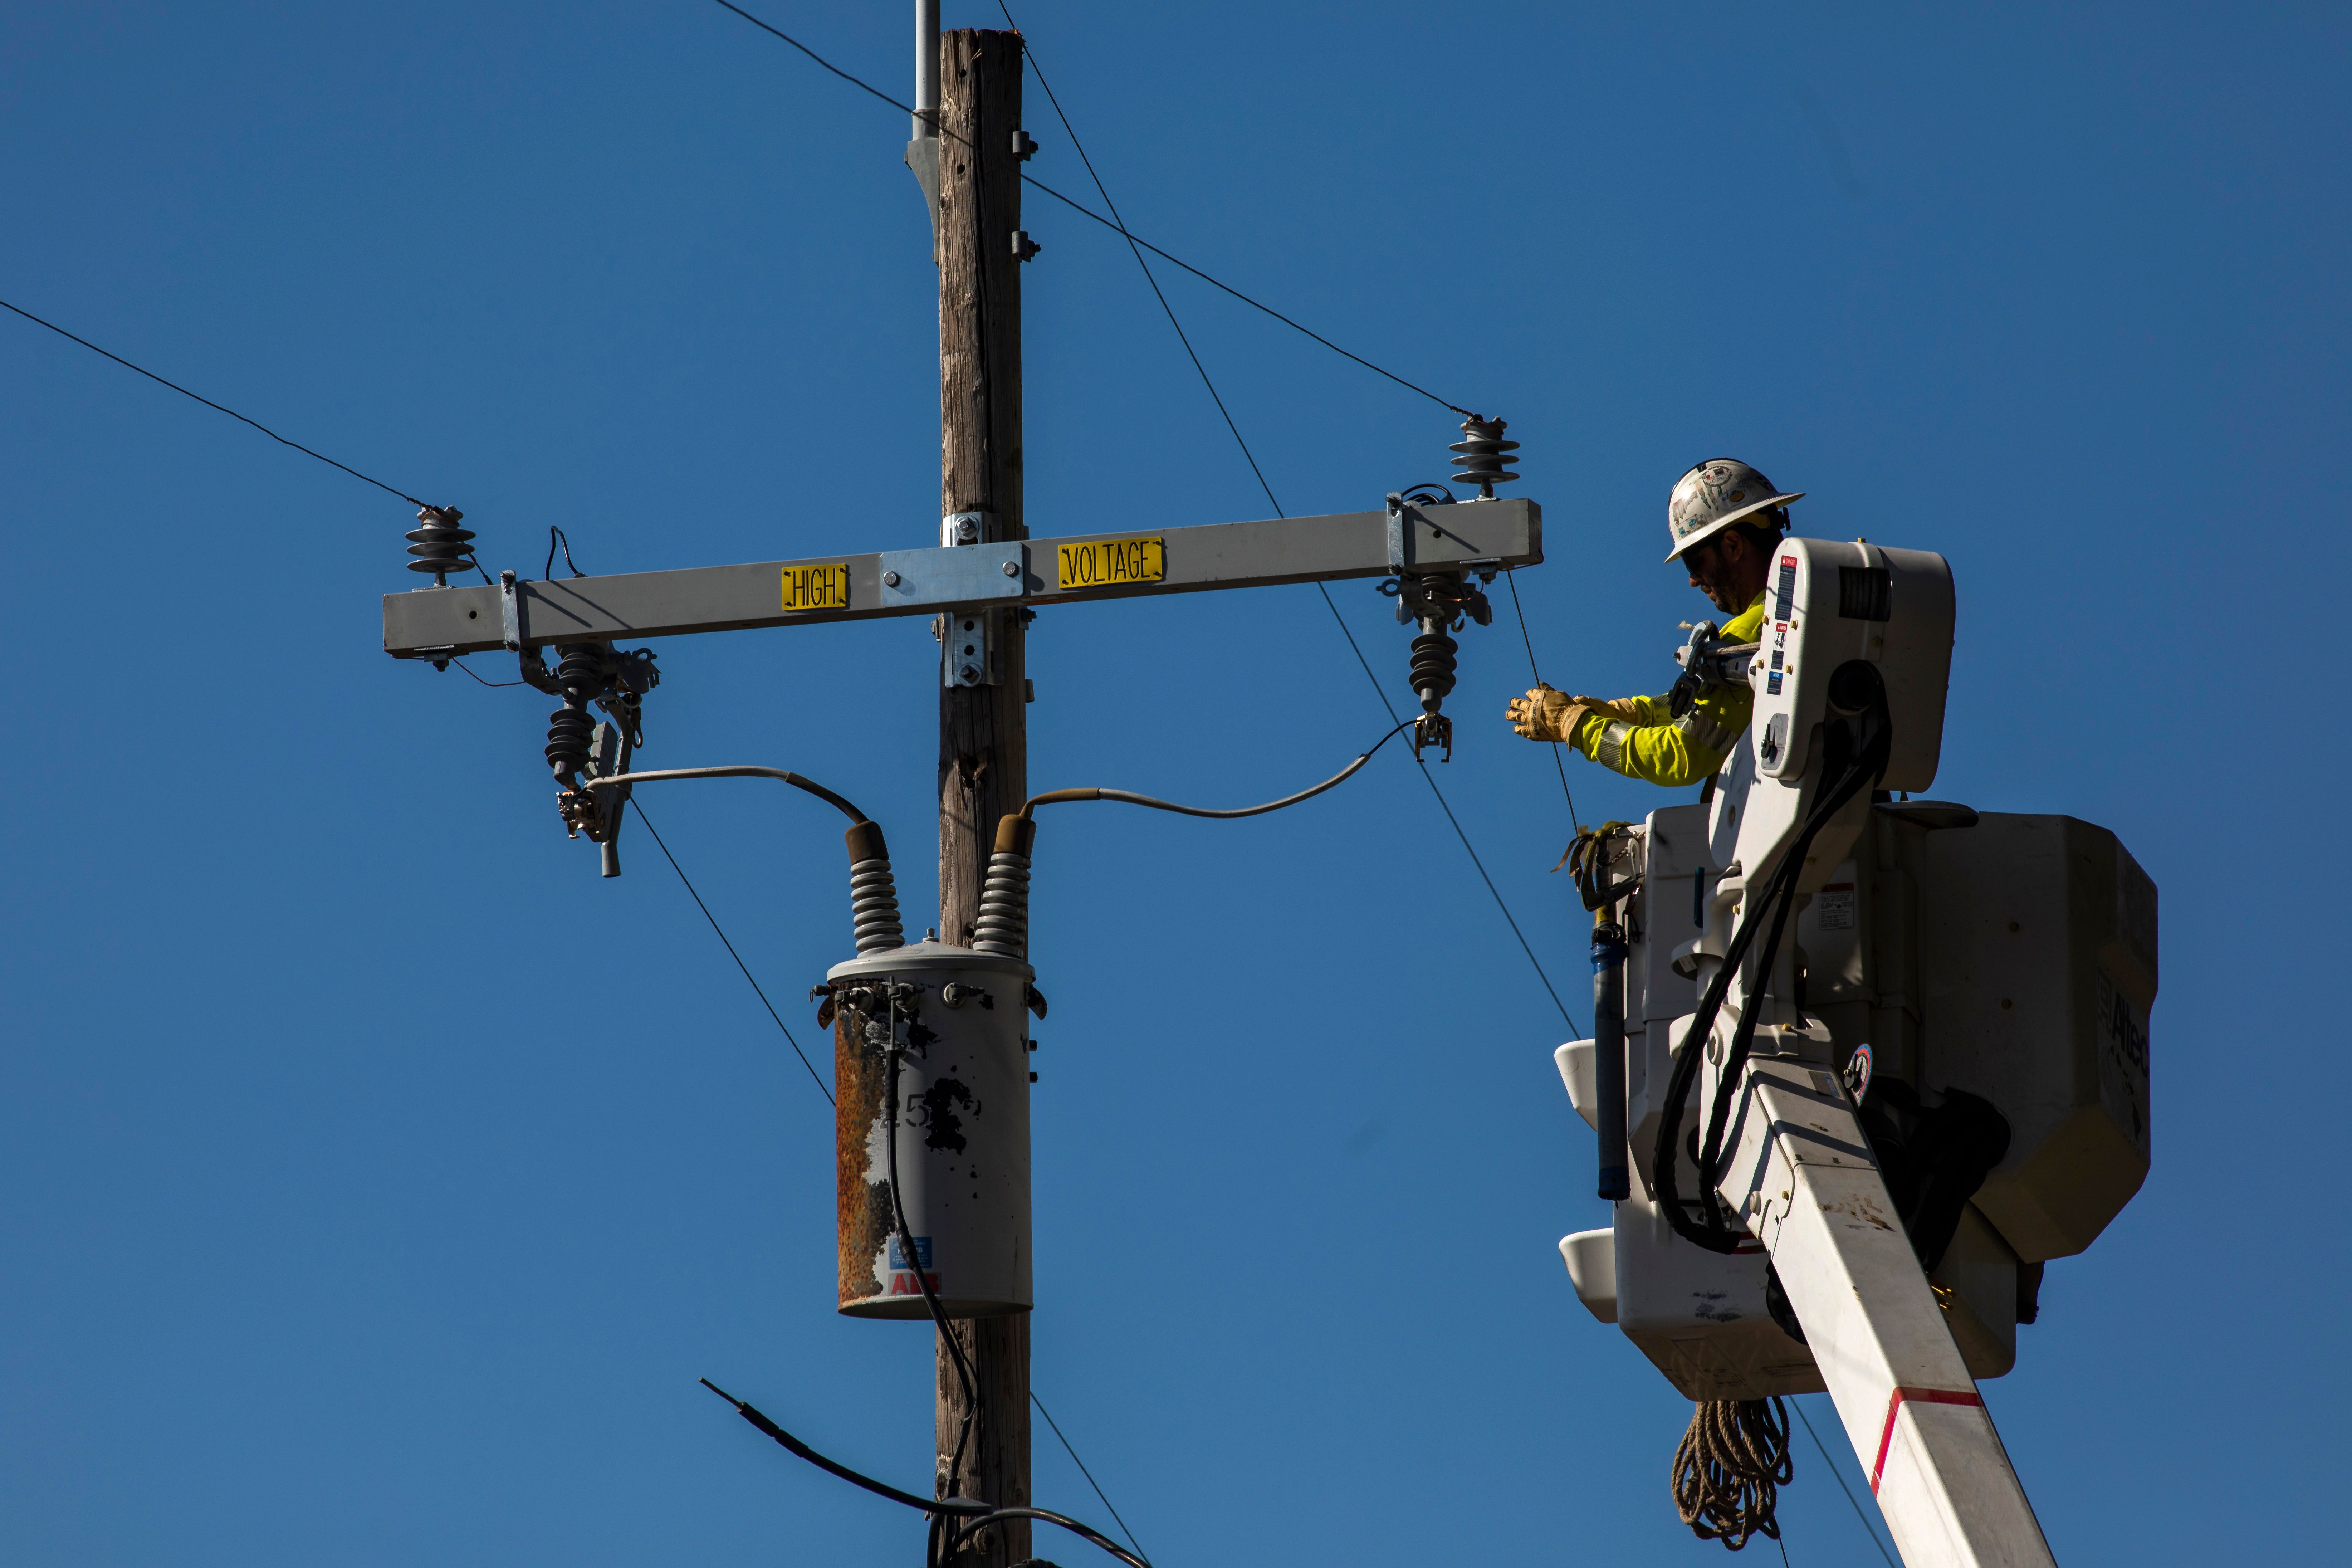 A worker in a hardhat and yellow vest using a crane to reach power lines during an inspection.